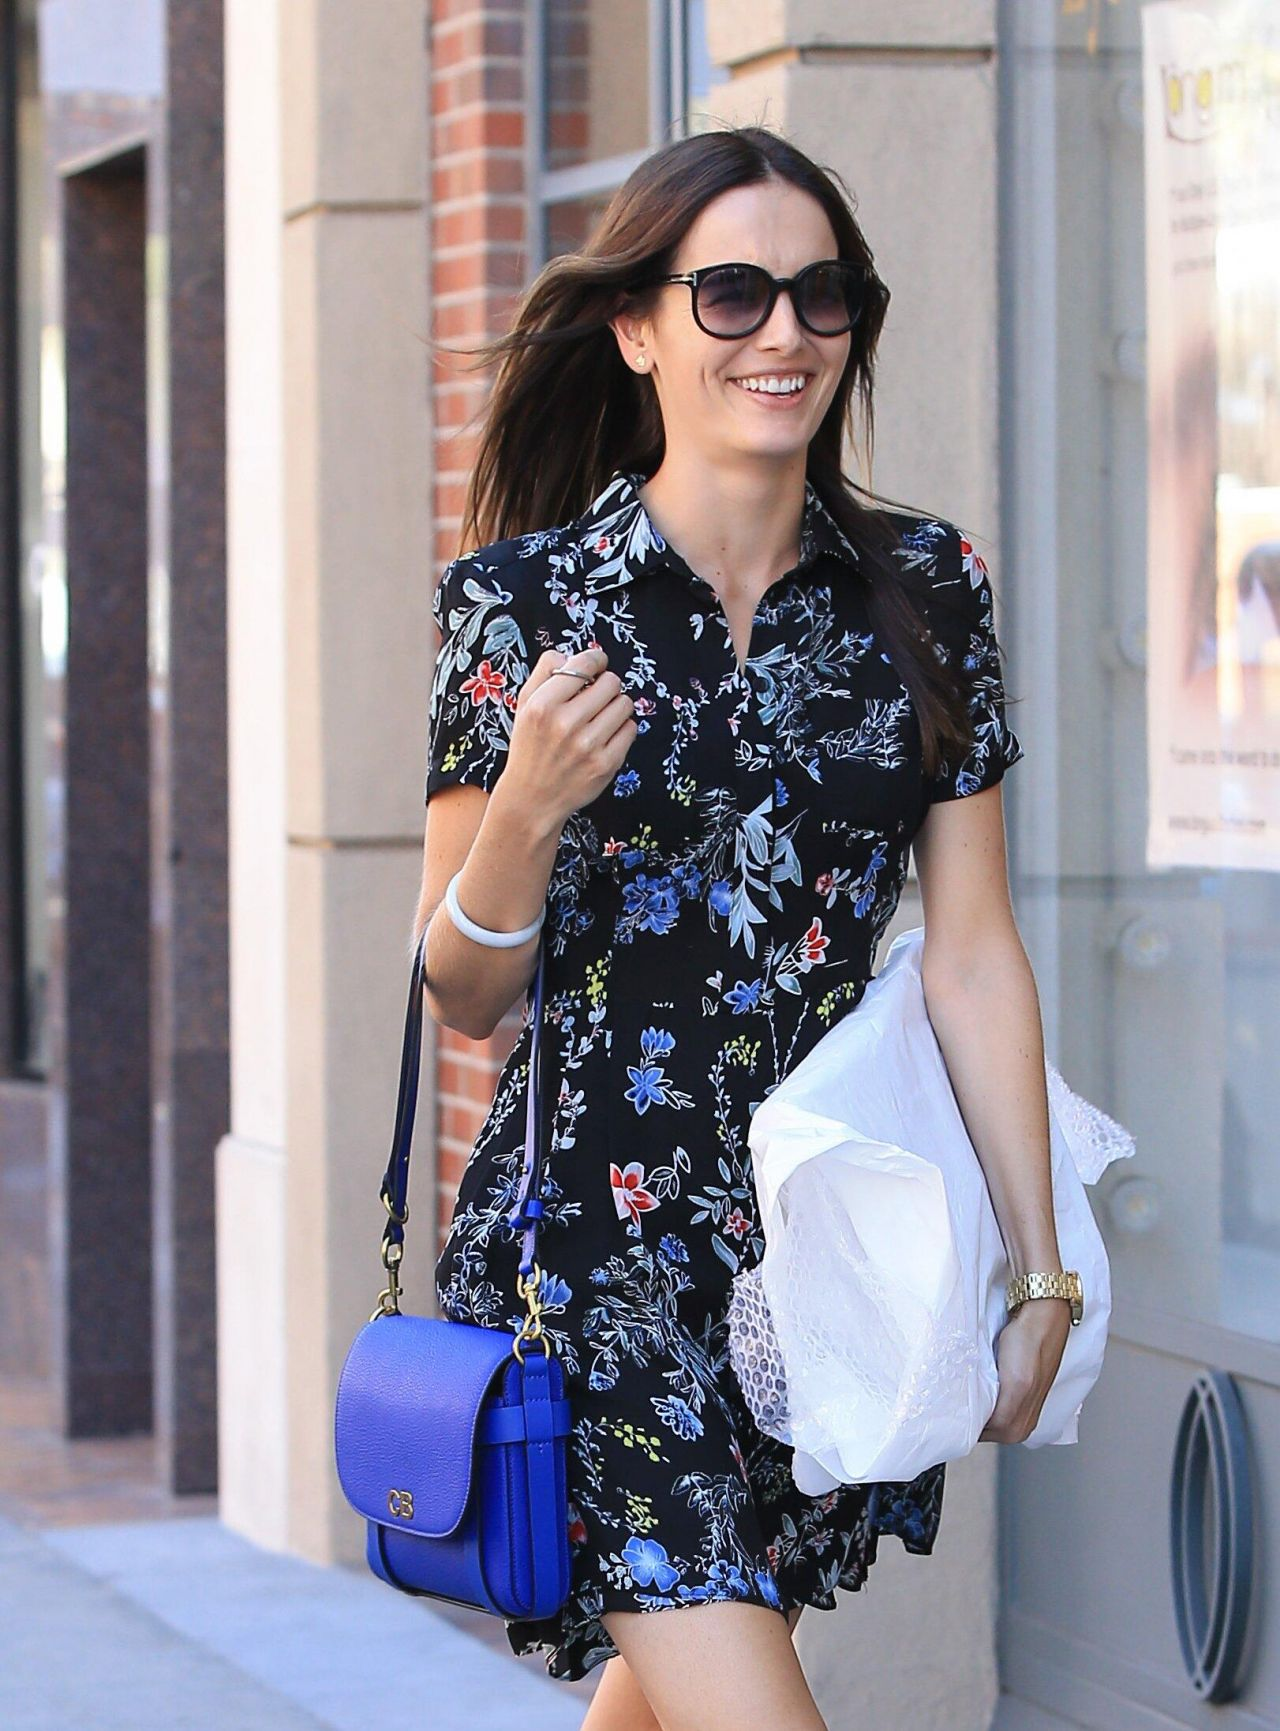 camilla belle out in beverly hills 9282016